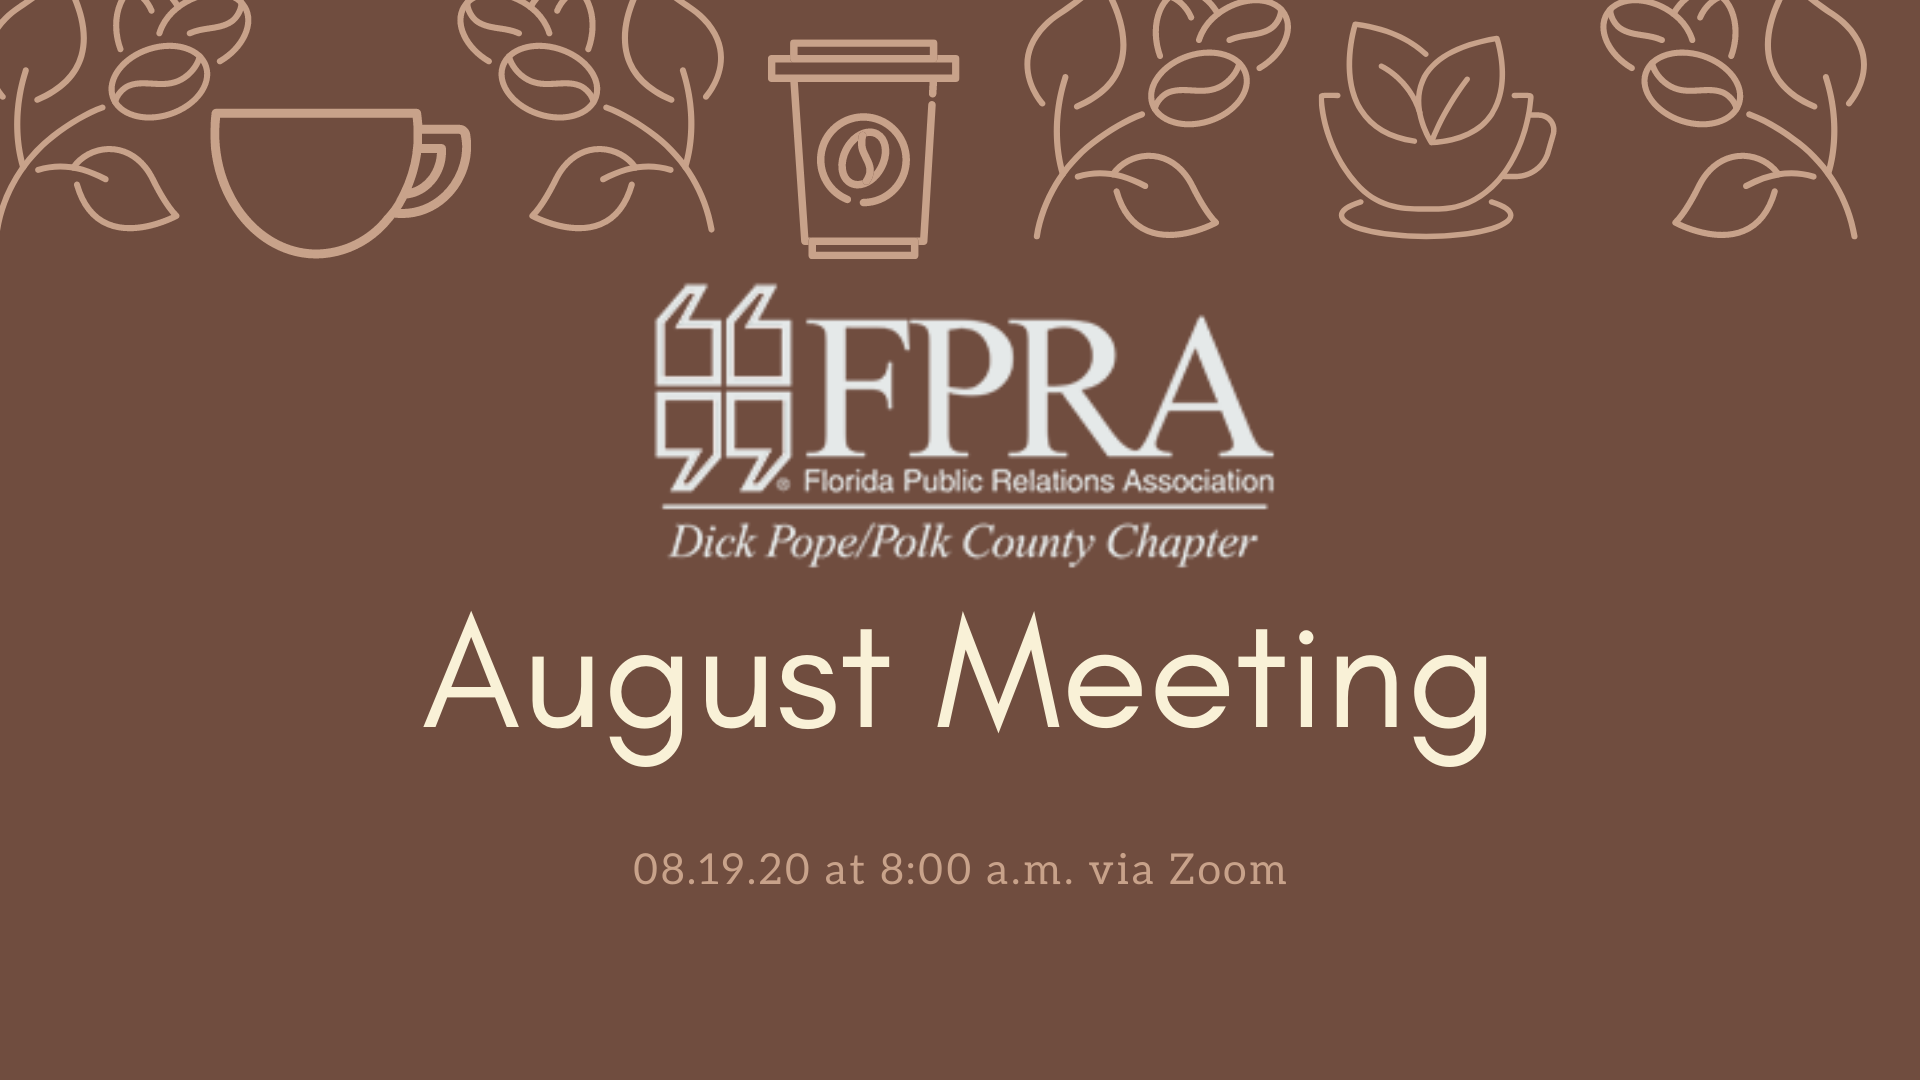 August Meeting Banner Image